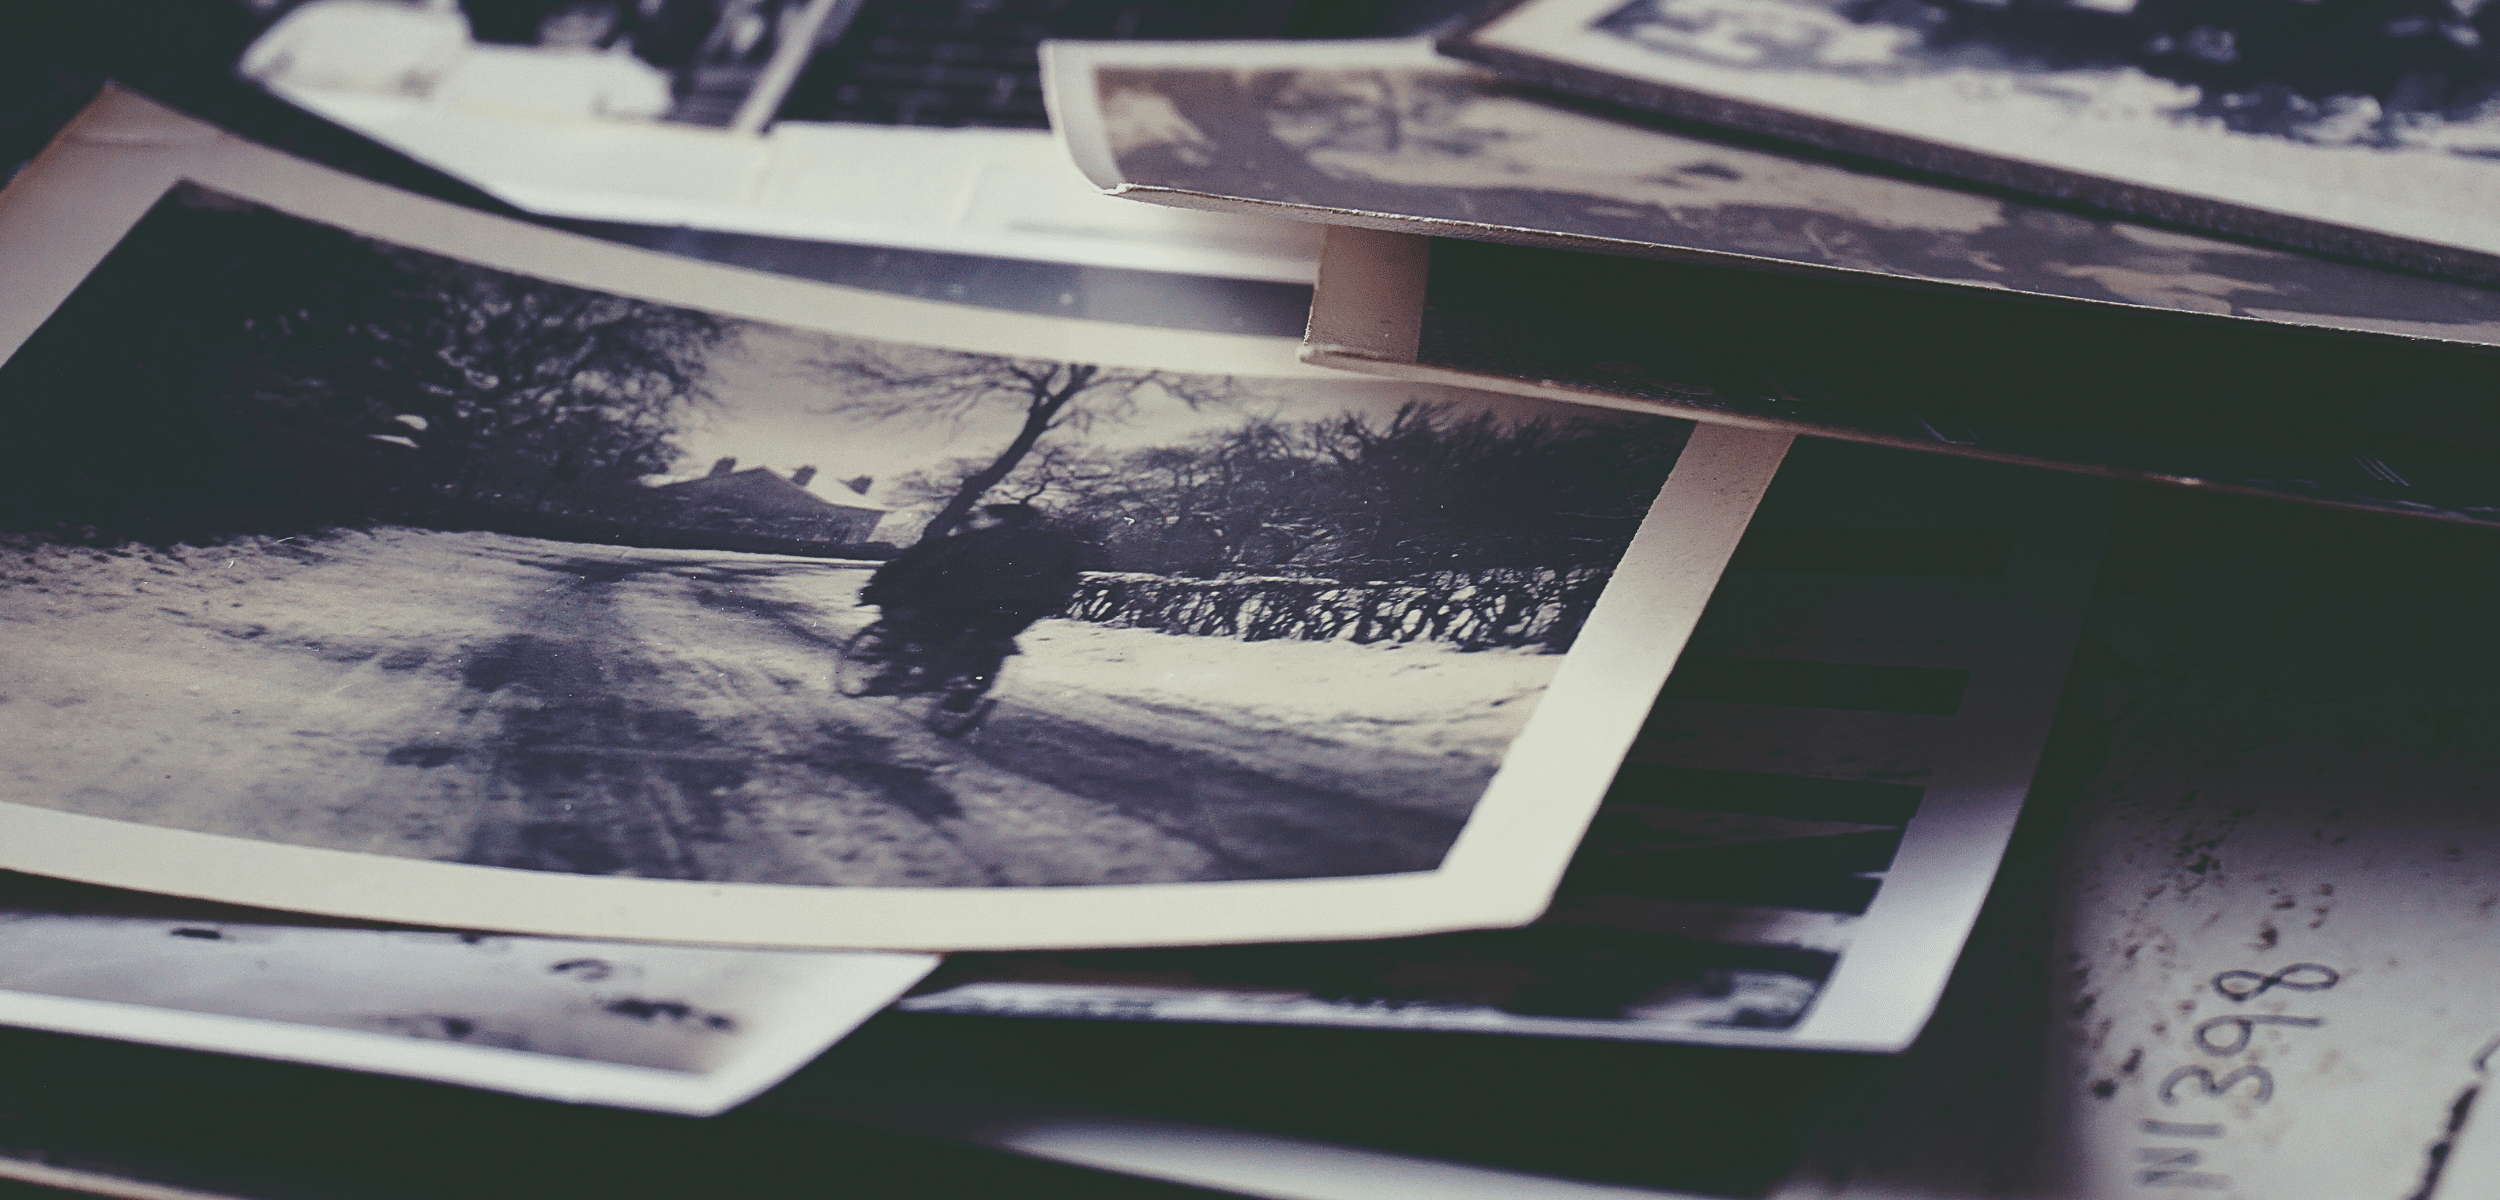 image for Tips to Digitize Photos